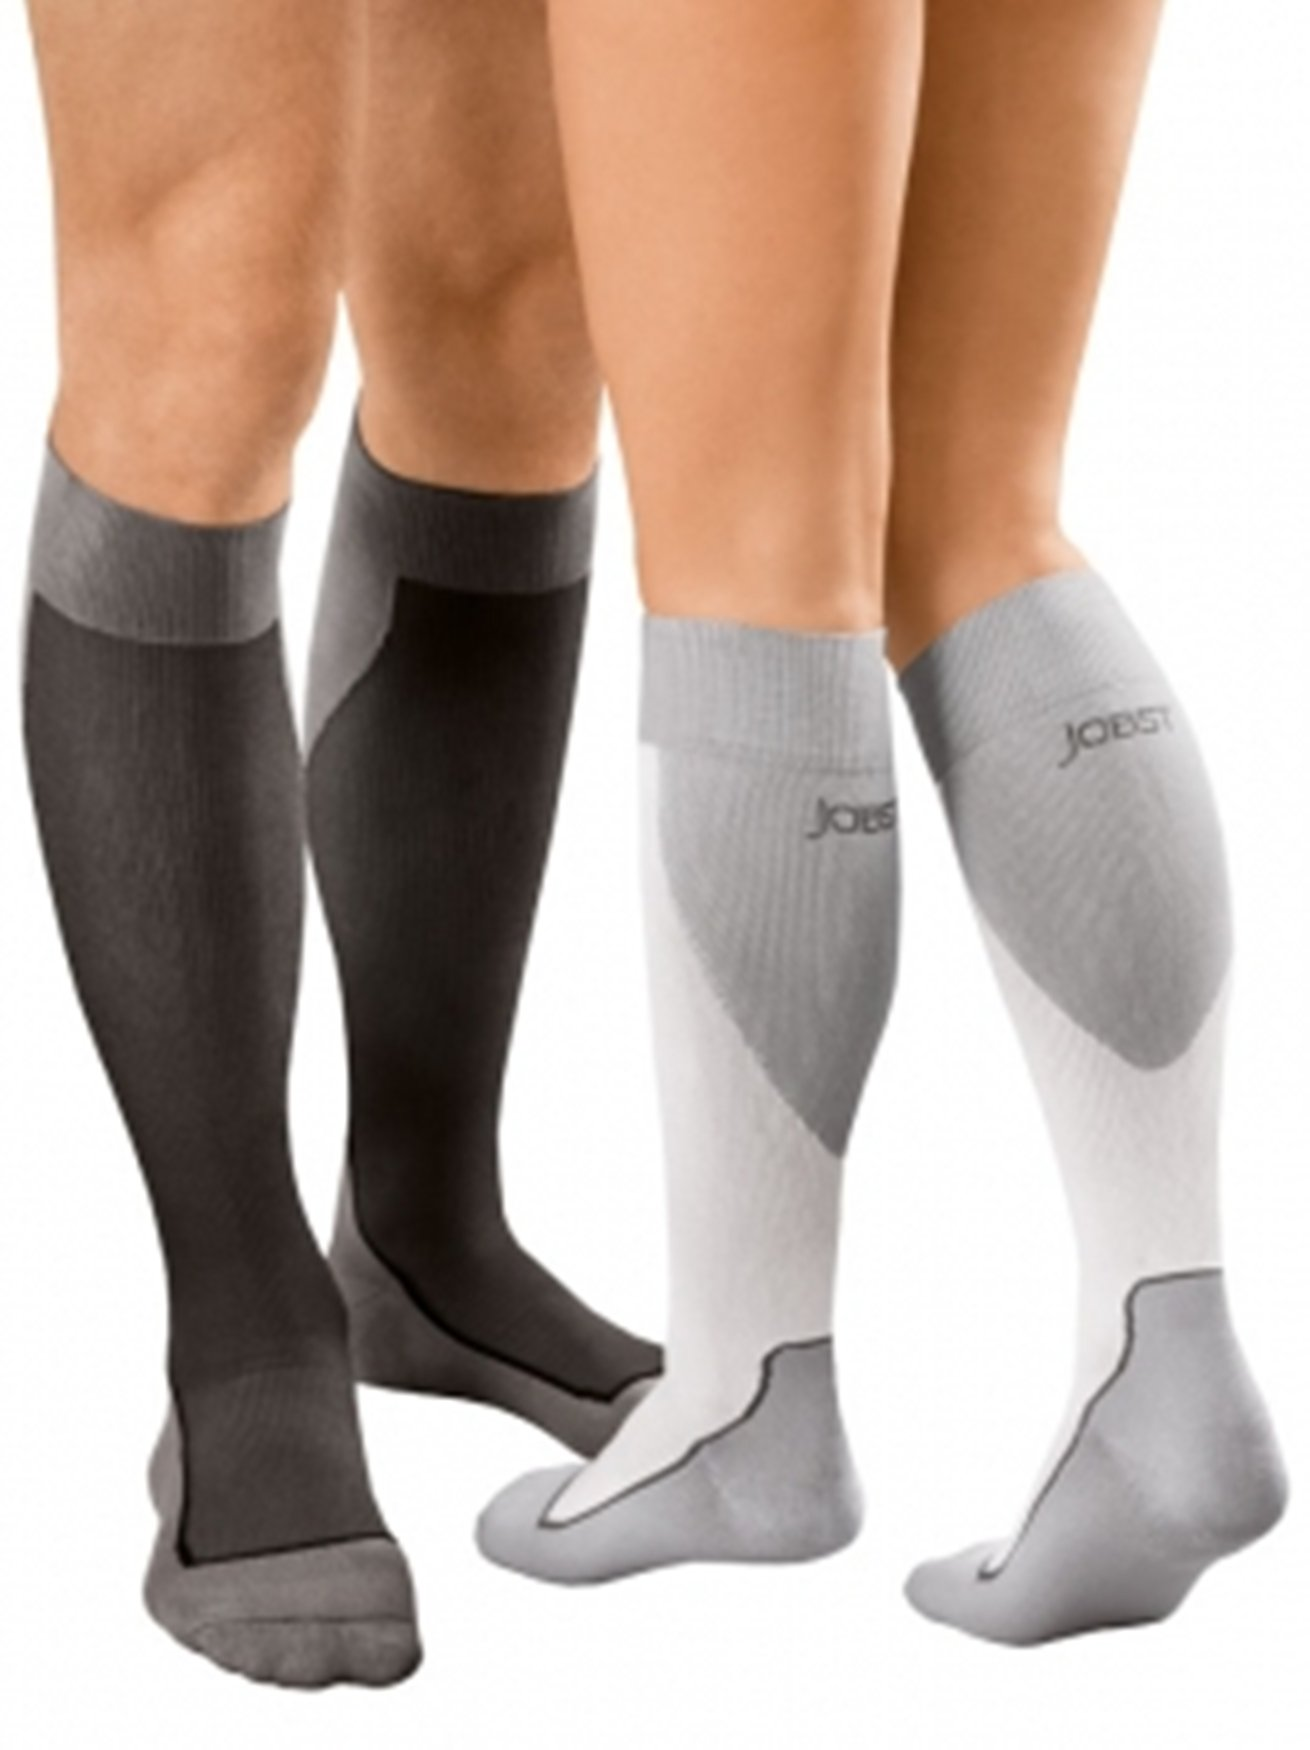 JOBST Sport Knee High 20-30 mmHg Compression Socks, Black/Cool Black, Medium